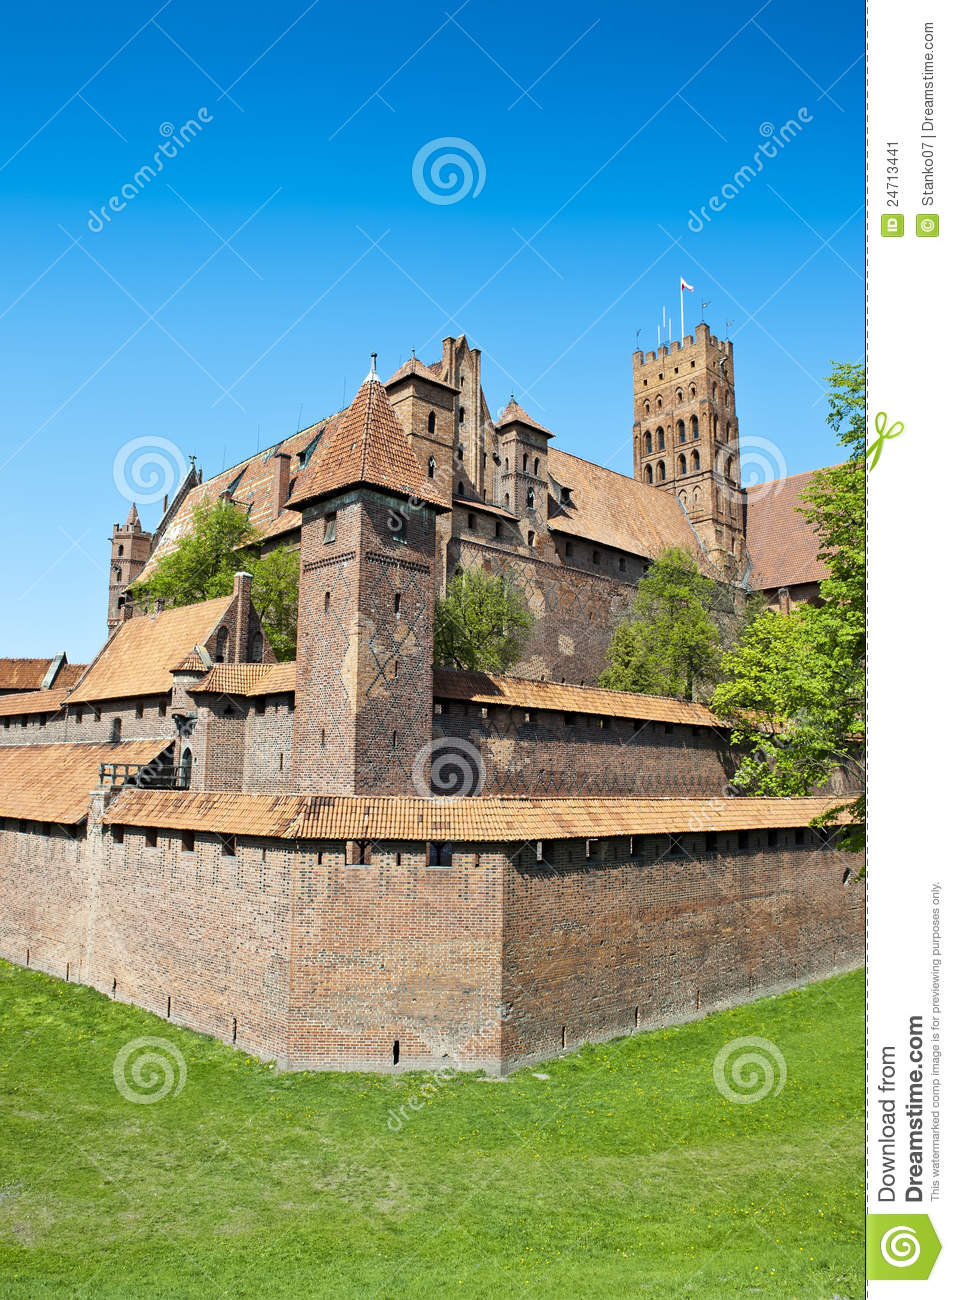 Teutonic Knights' Fortress Stock Image.